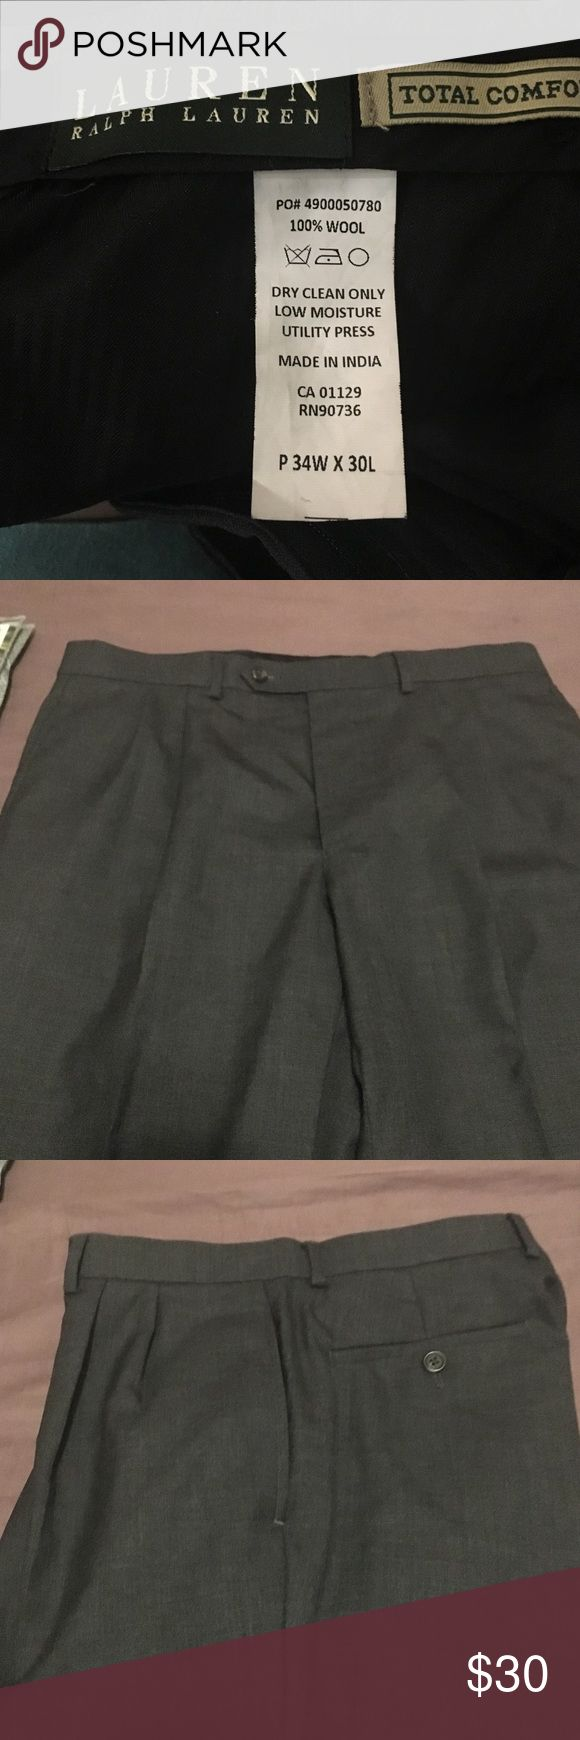 New dress pants Ralph Laurent 100% wool I both this pants for my soon but he never used  it, in new condition Ralph Lauren  total comfort made in India p 34w x 30 L Ralph Lauren Pants Dress